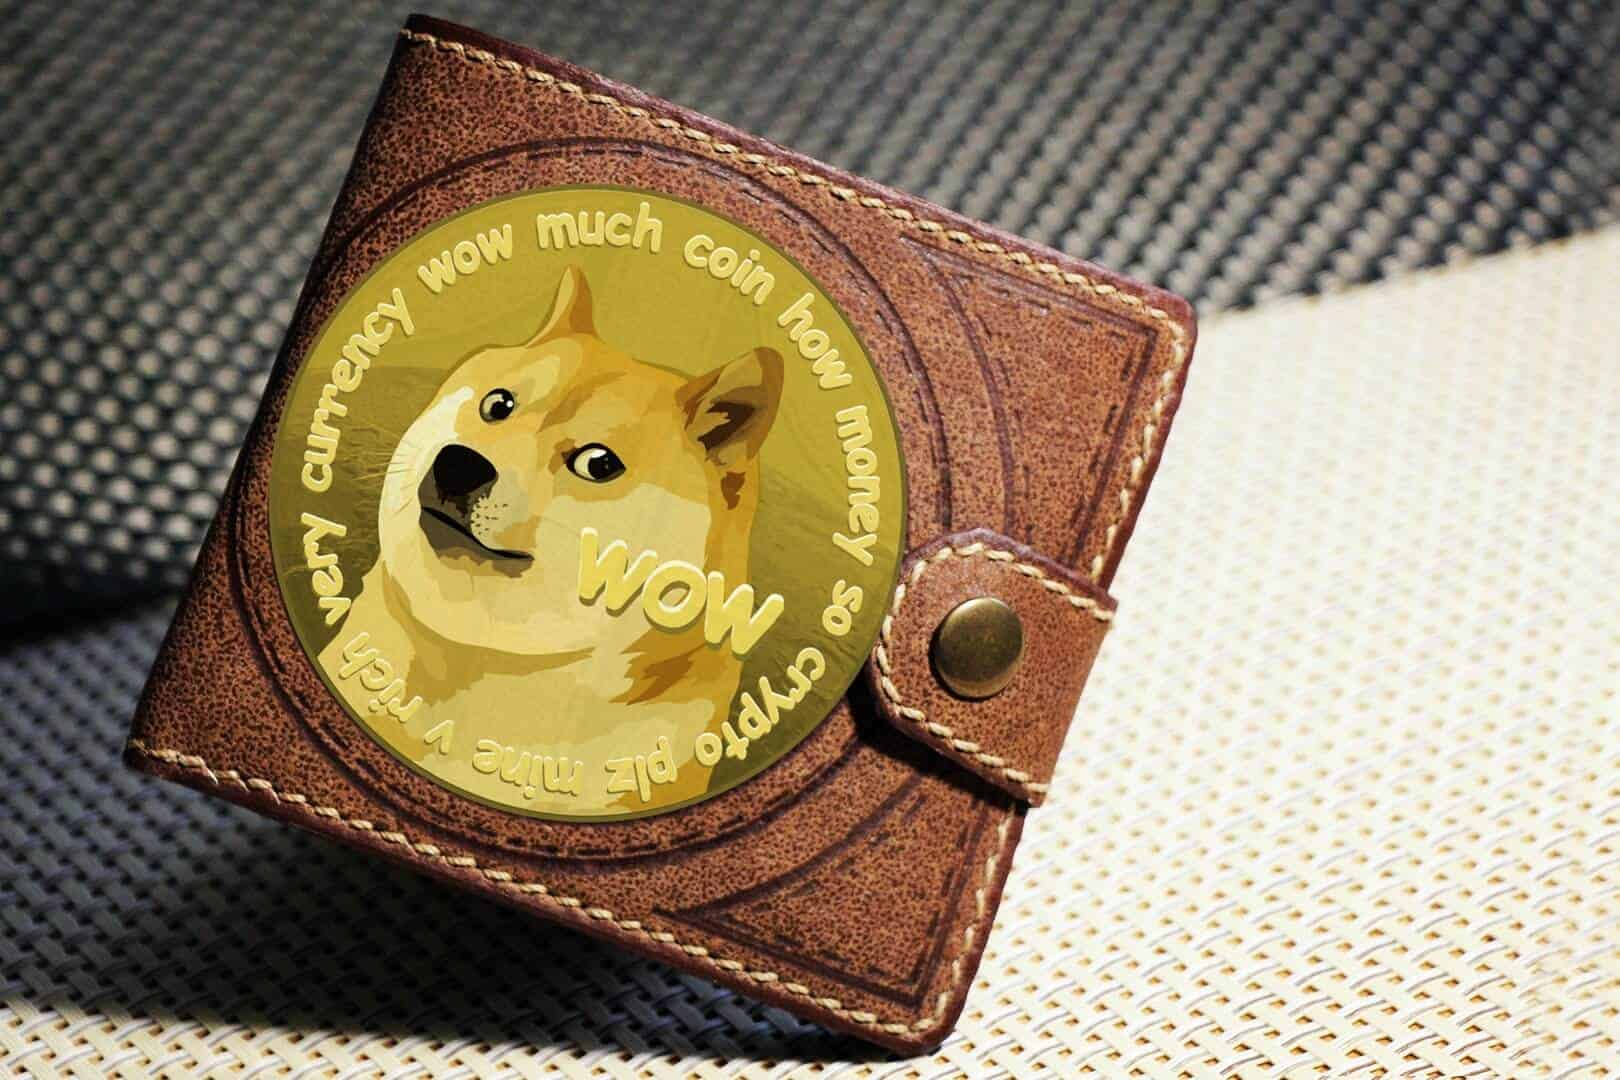 Majority Of Dogecoin Supply Owned By Only 0.01% Of Holders